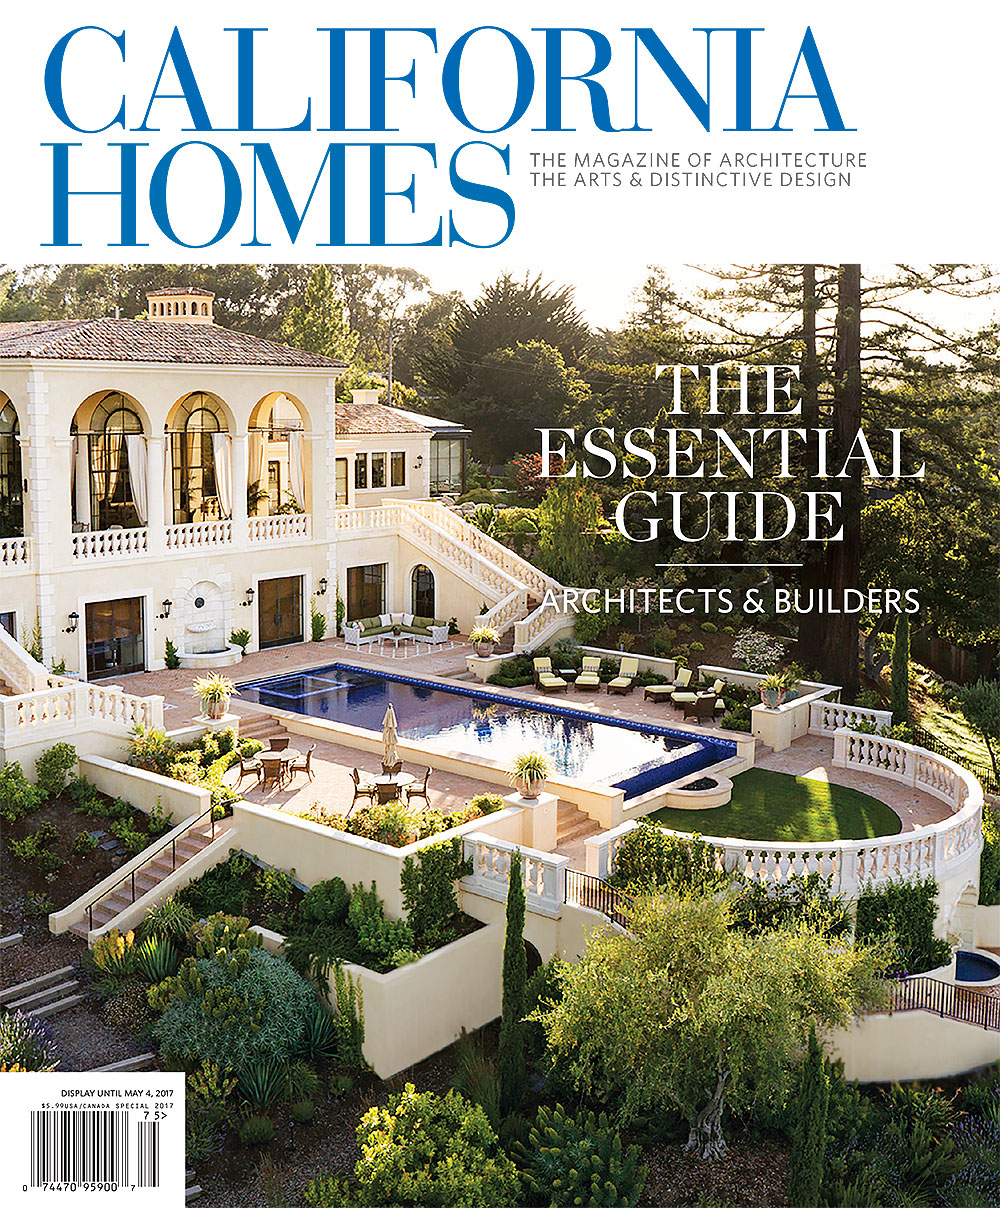 CALIFORNIA HOMES    April 2017   The Essential Guide